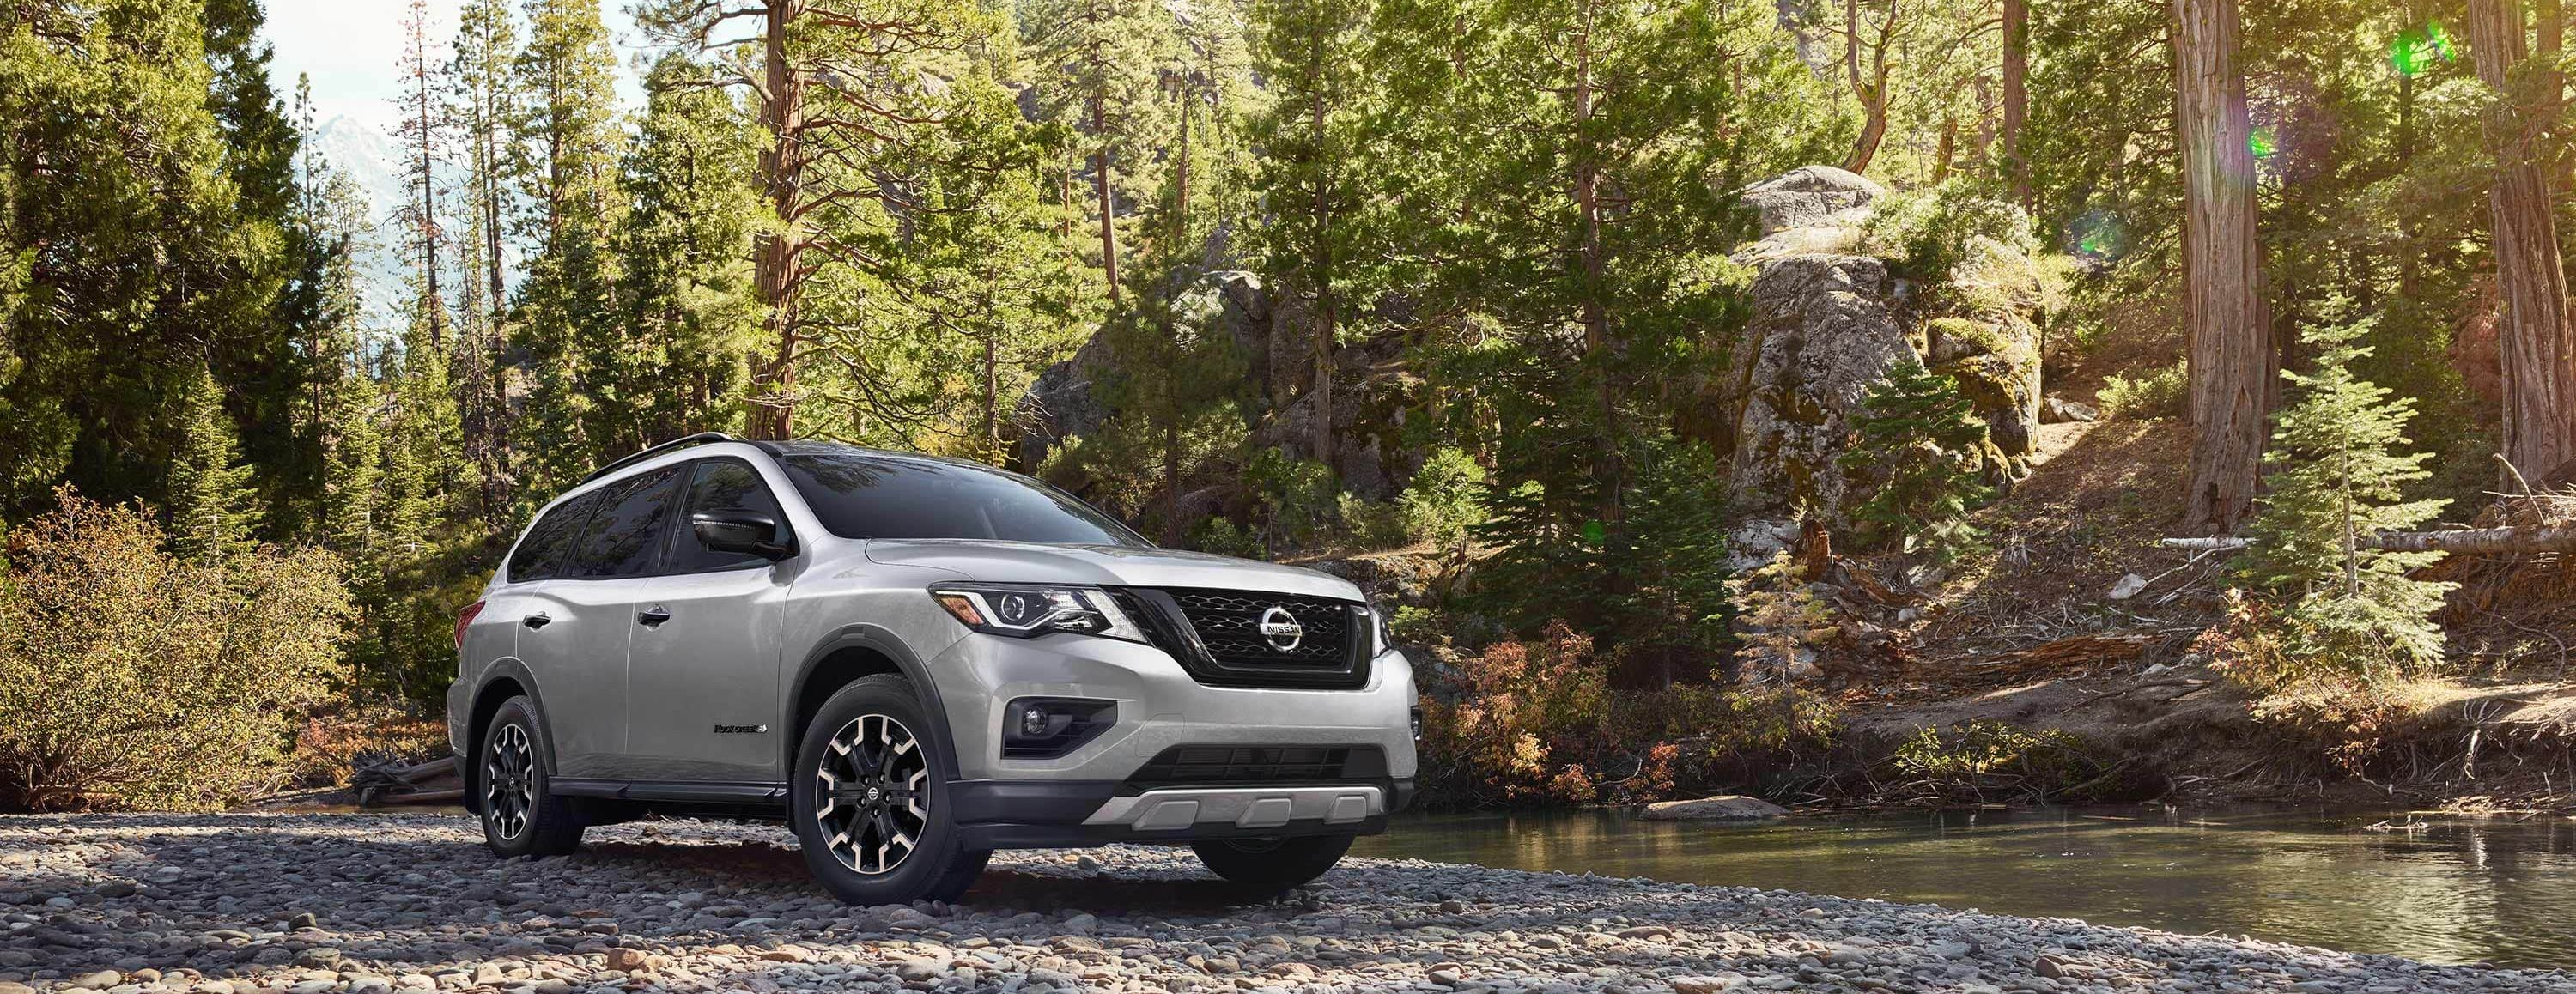 2019 Nissan Pathfinder Rock Creek Edition for Sale near Woonsocket, RI